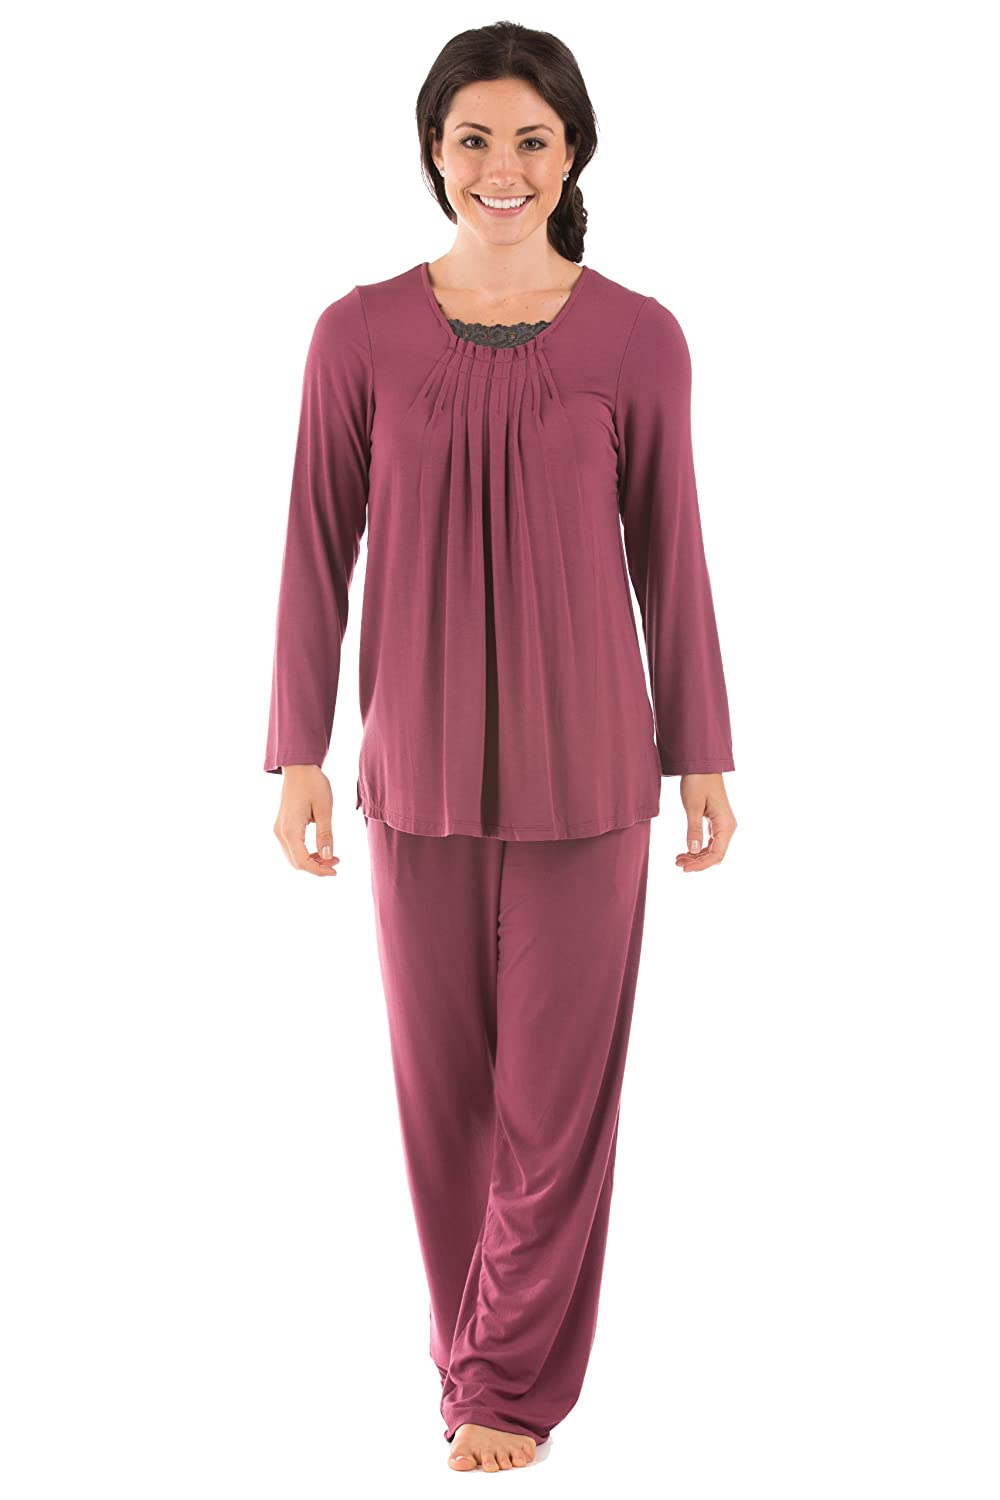 65e7b5724802f2 Women s Bamboo Viscose Pajama Set (Tranquille) Long Sleeve Pajamas by Texere